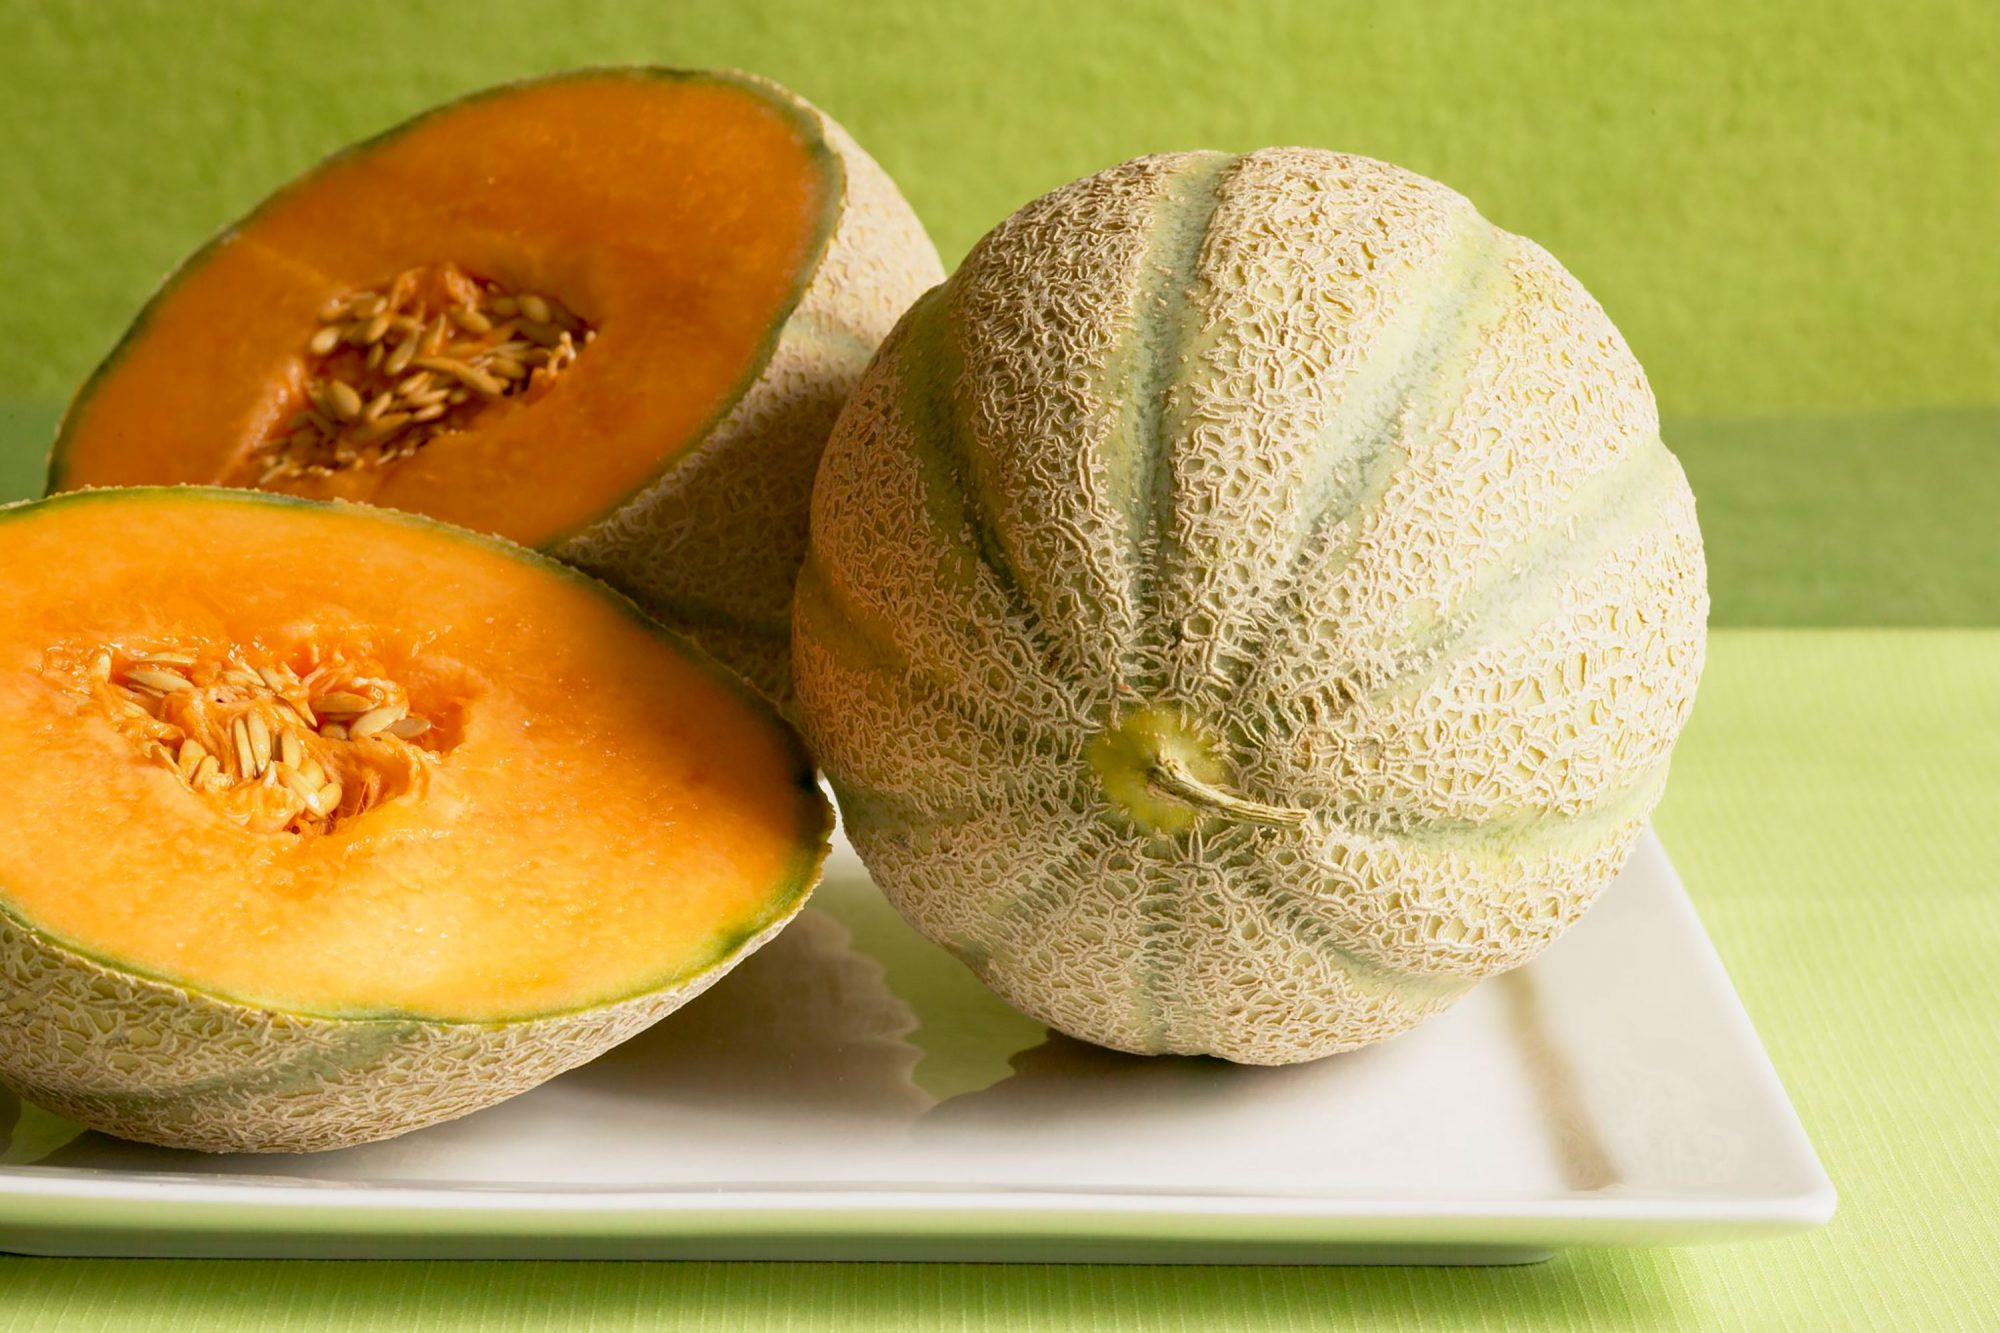 Cantaloupe sliced on white plate with green background